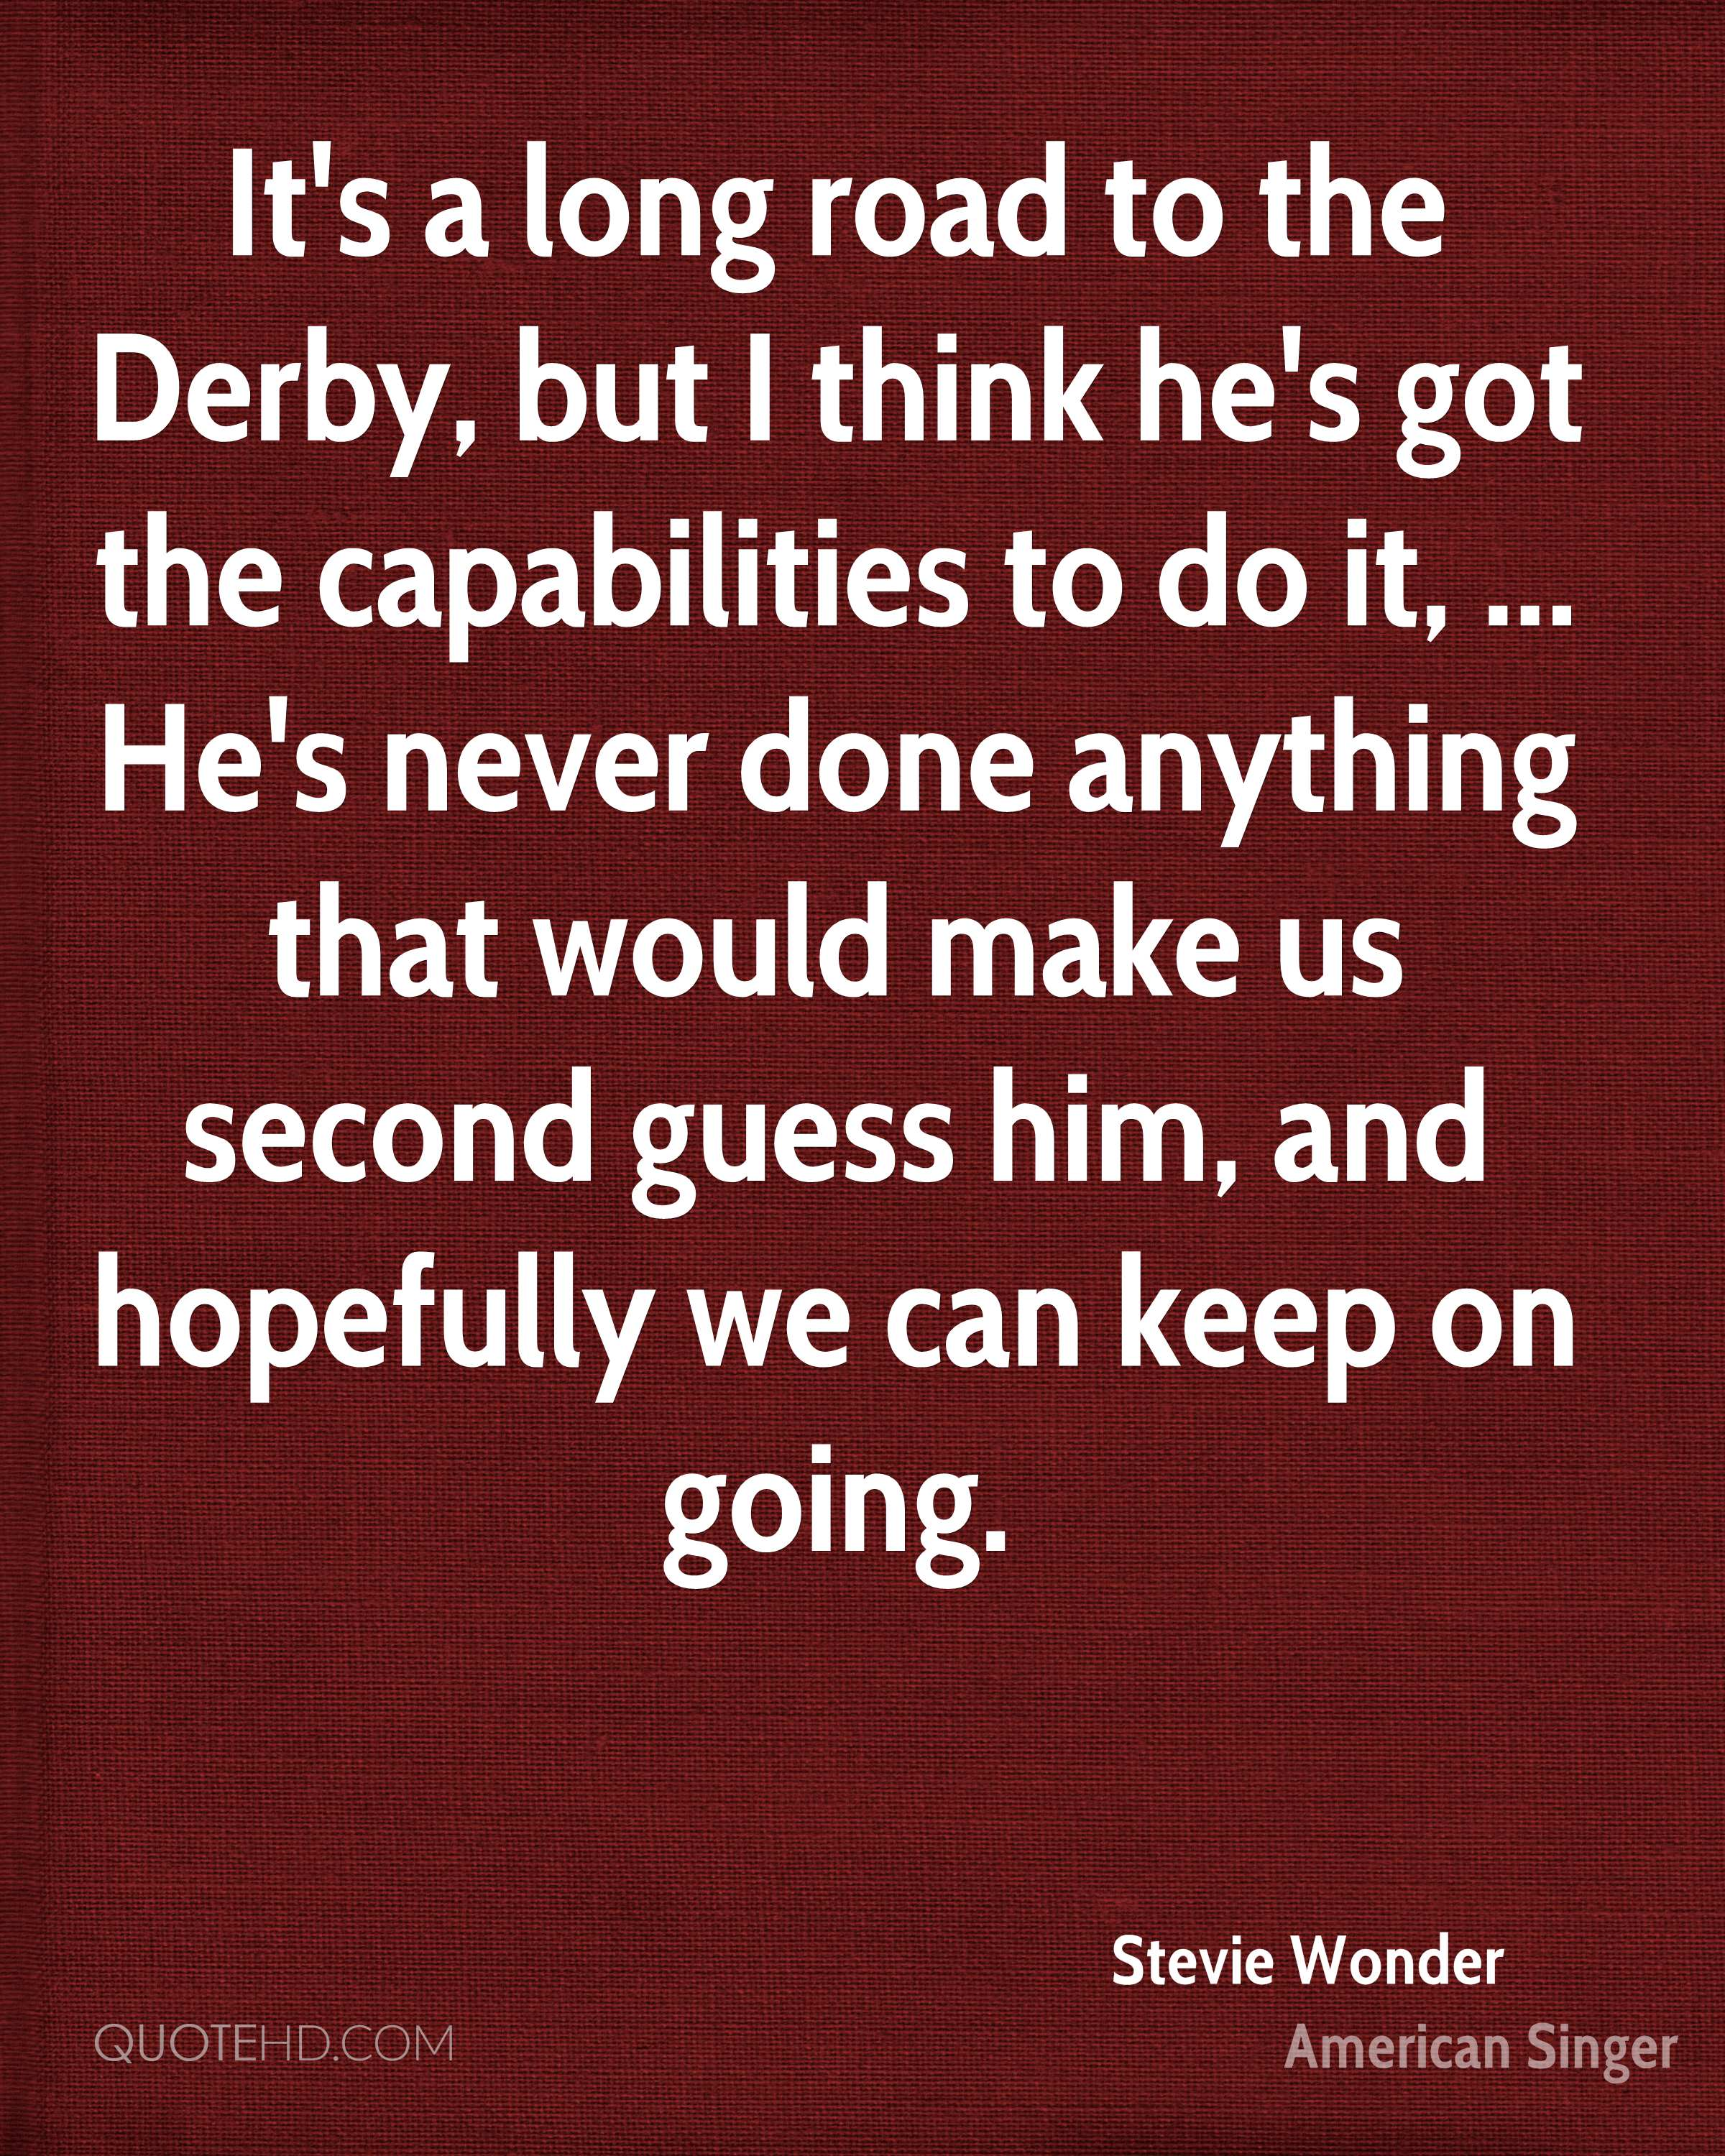 It's a long road to the Derby, but I think he's got the capabilities to do it, ... He's never done anything that would make us second guess him, and hopefully we can keep on going.